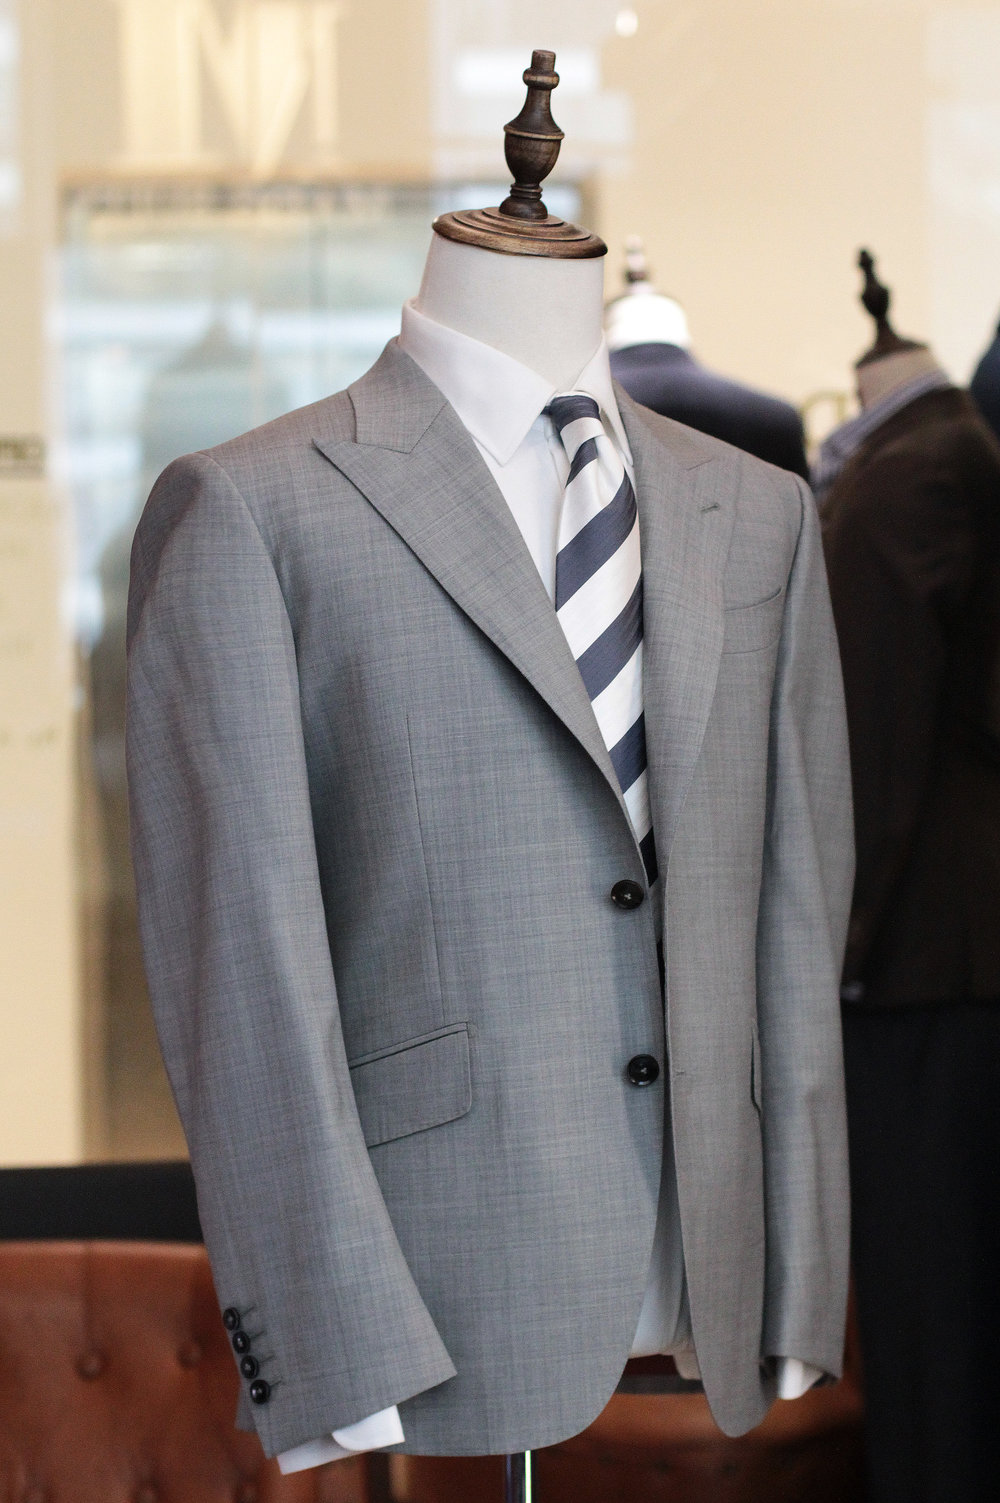 The Collateral | Made Suits Tailor singapore suits bespoke made to measure side view.JPG